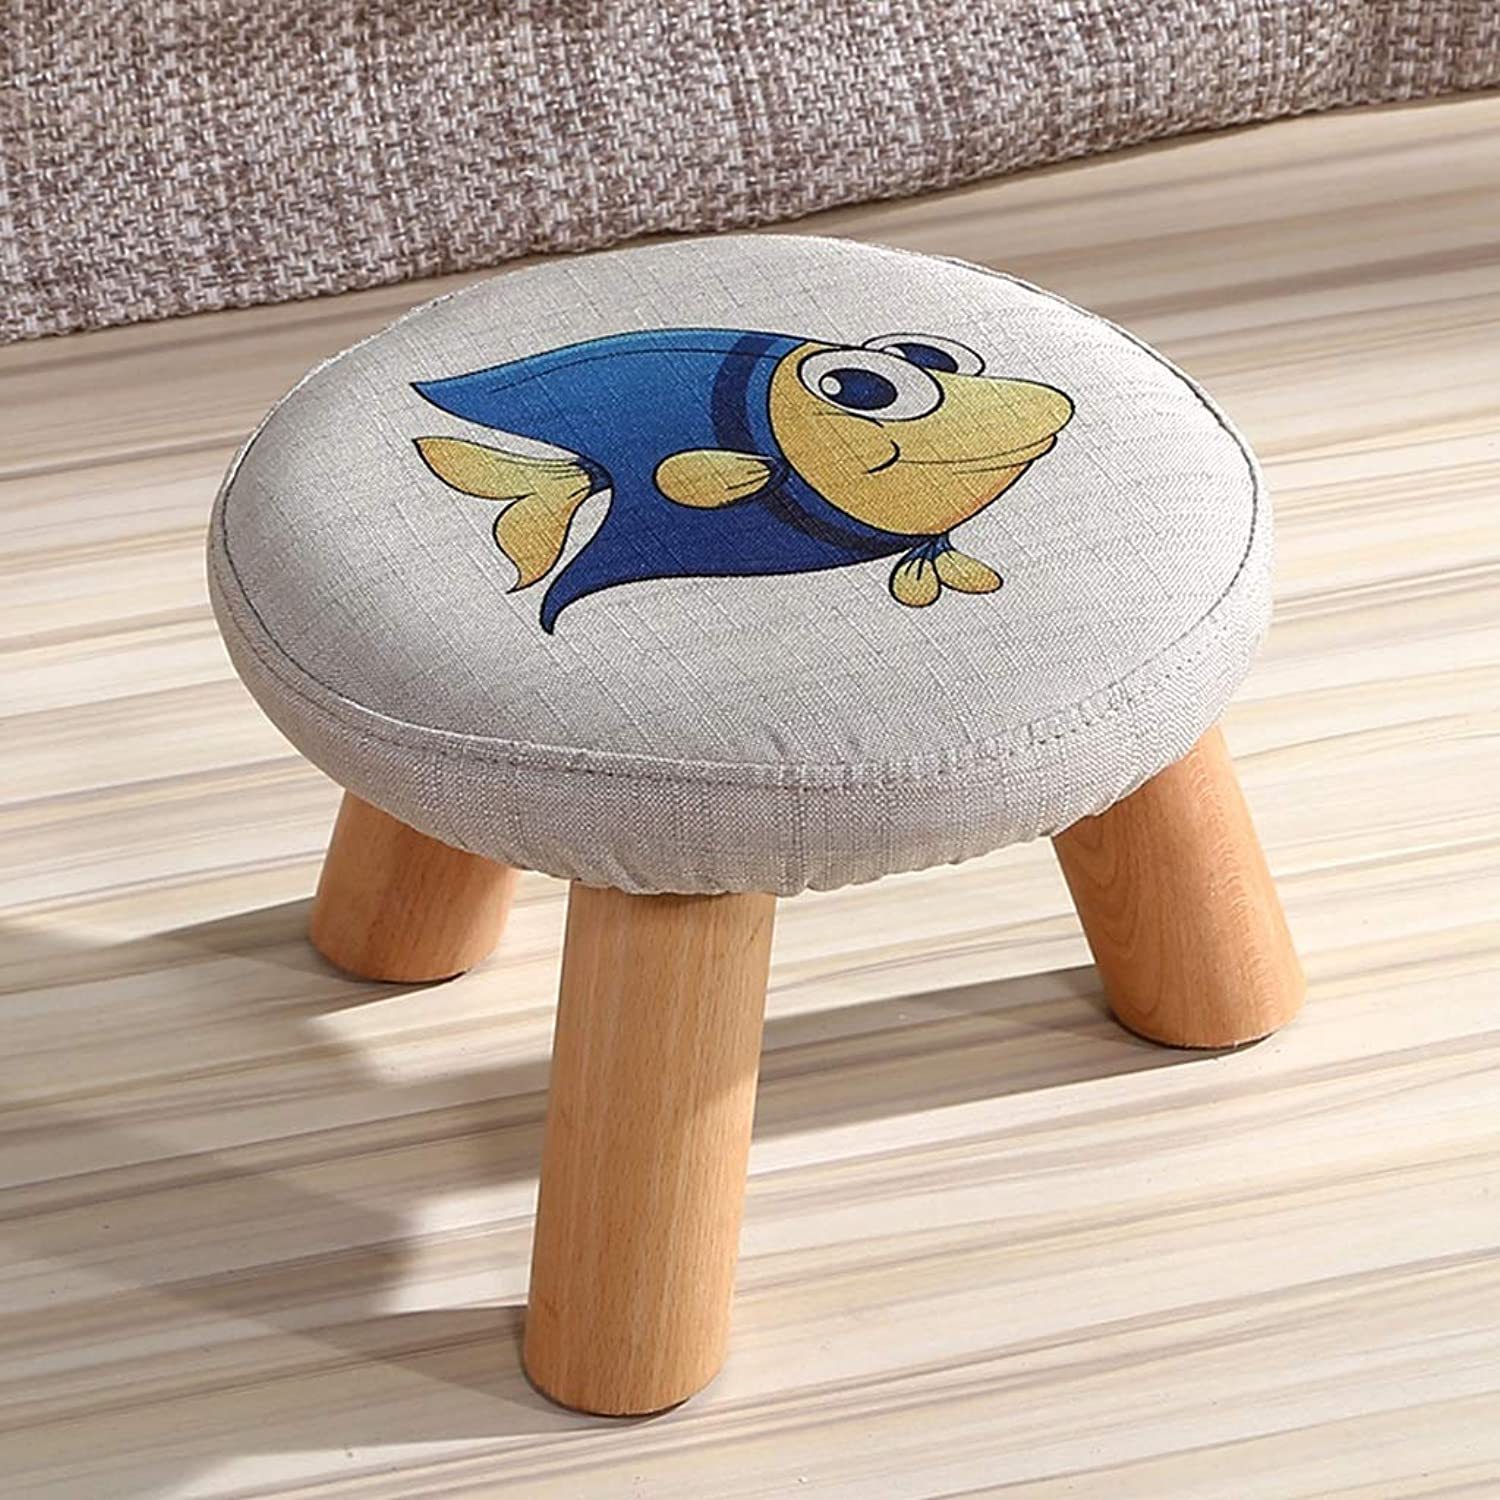 FLYSXP Solid Wood shoes Bench Small Fish Pattern Low Stool Fabric Fashion Creative Small Bench Sofa Bench 29x20cm Stool